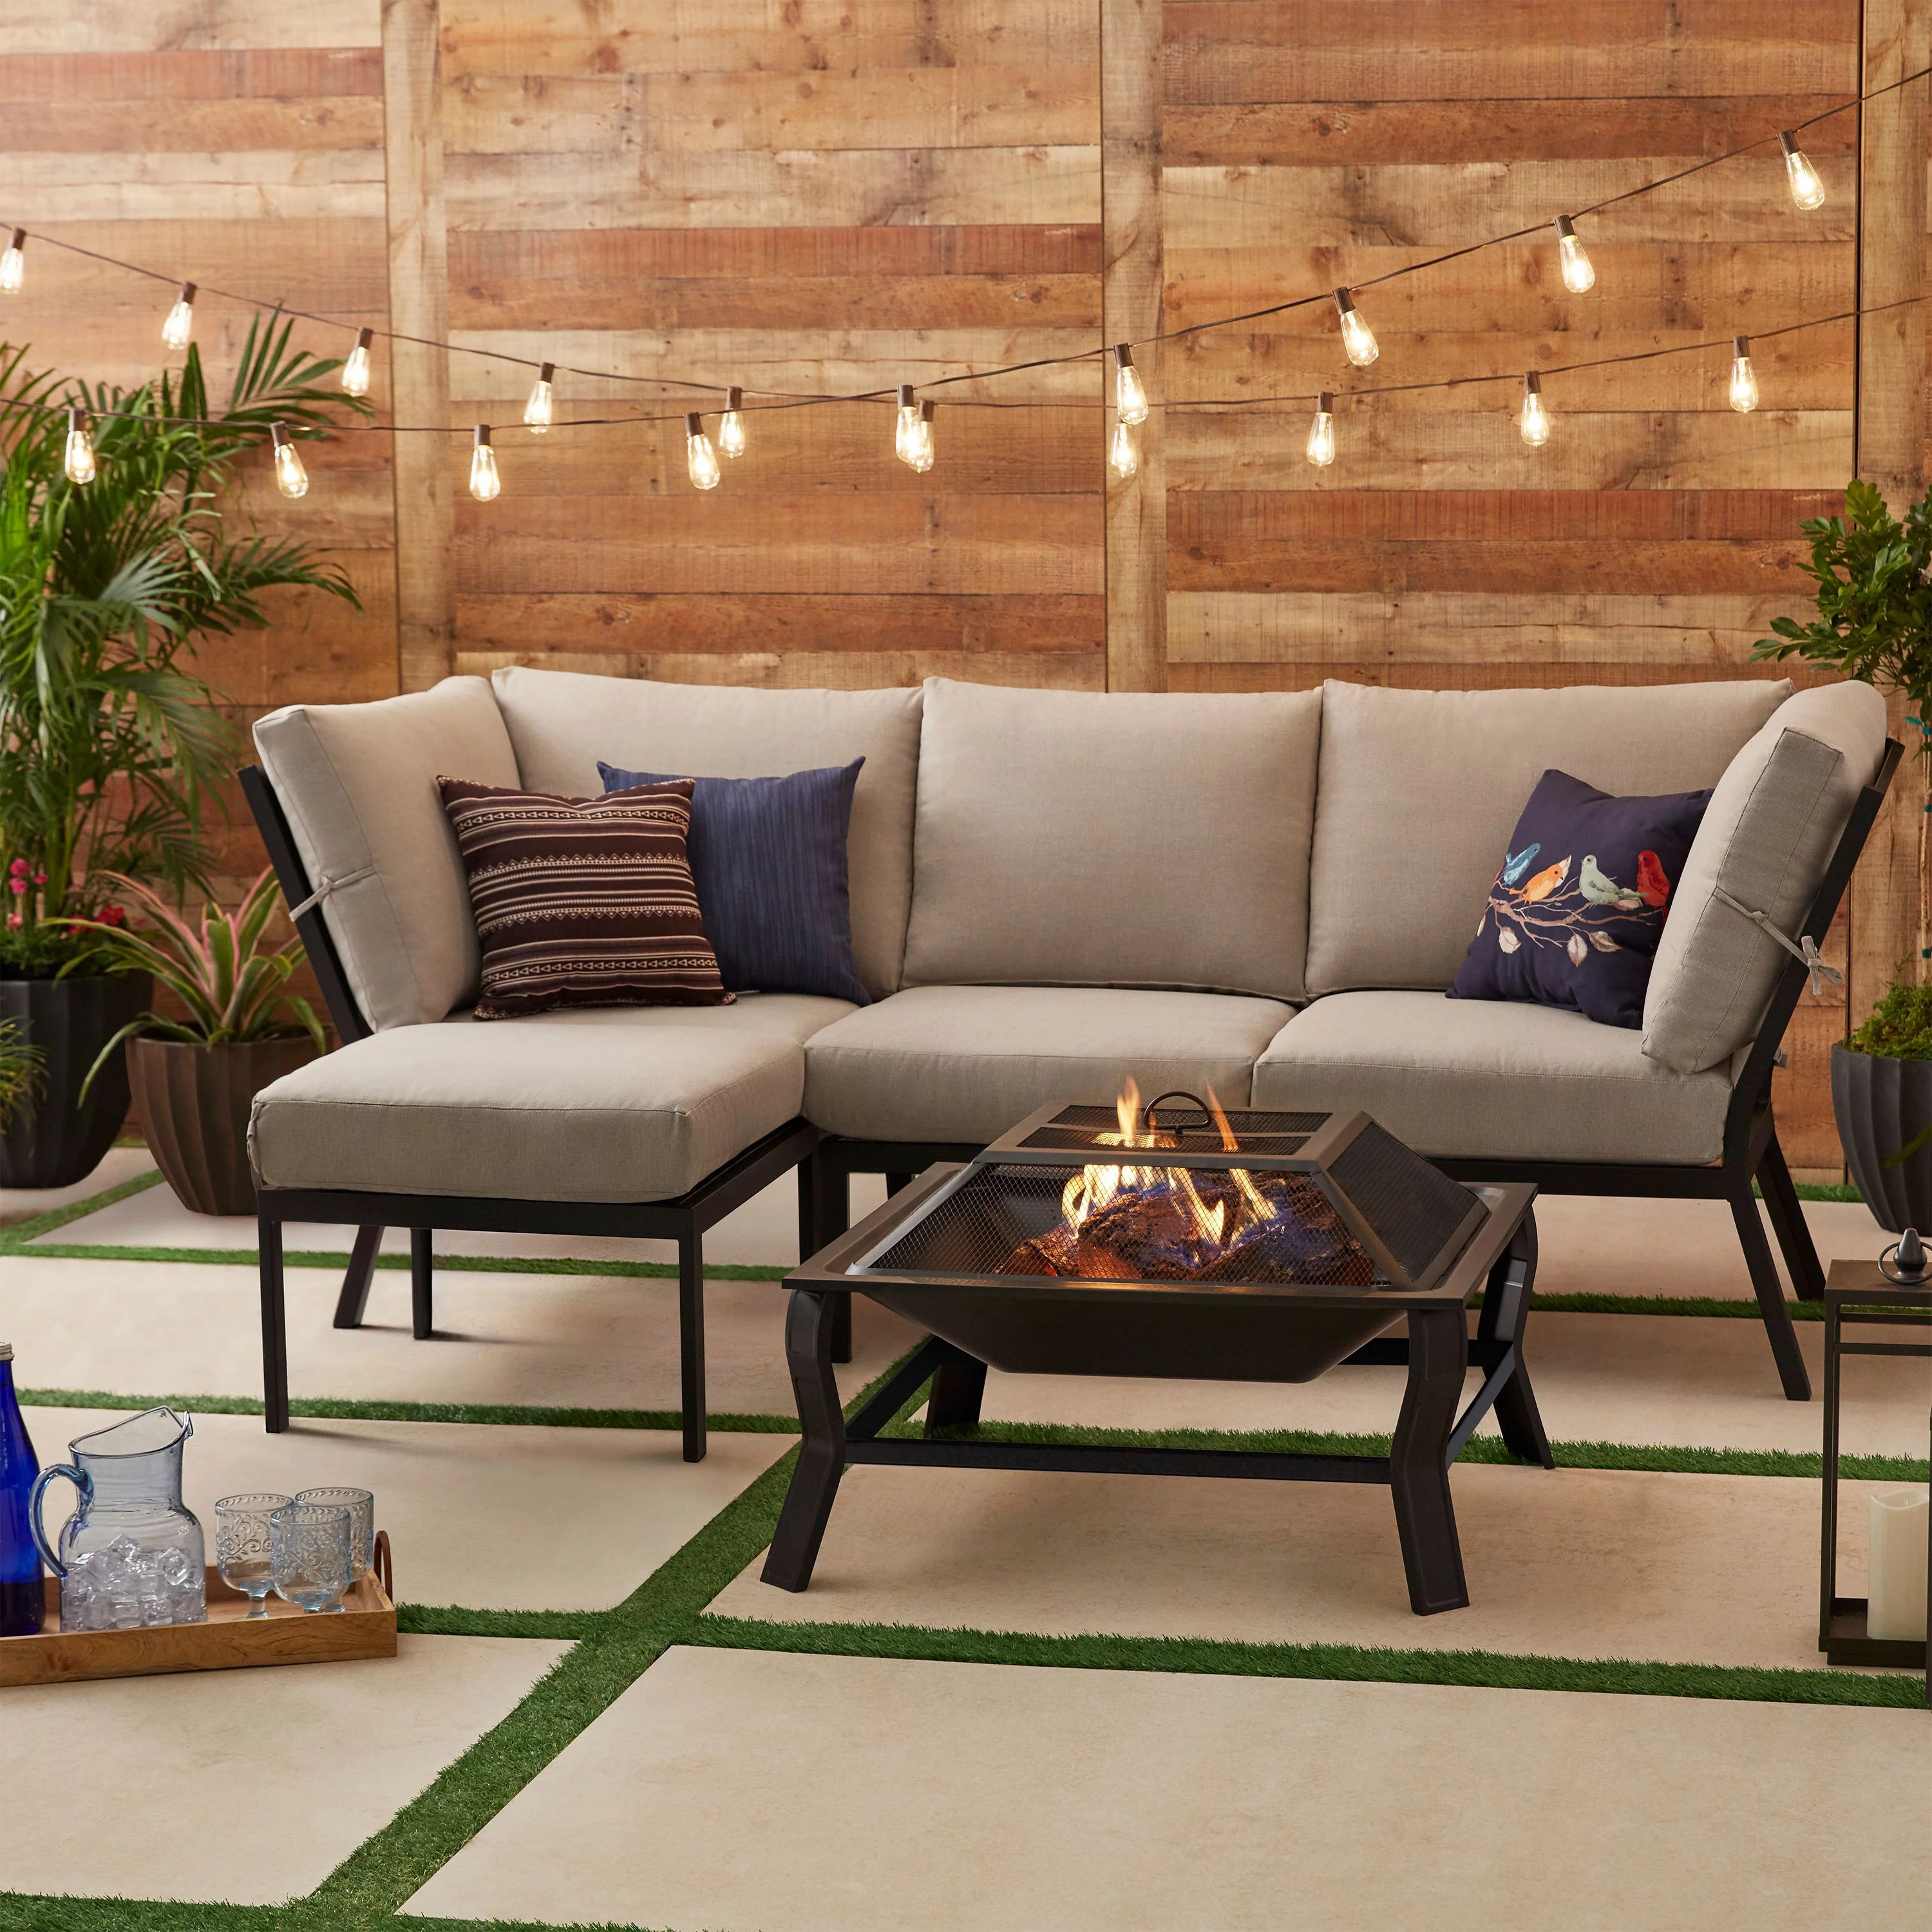 mainstays greyson square 4 piece outdoor patio sectional tan cushions and patio cover